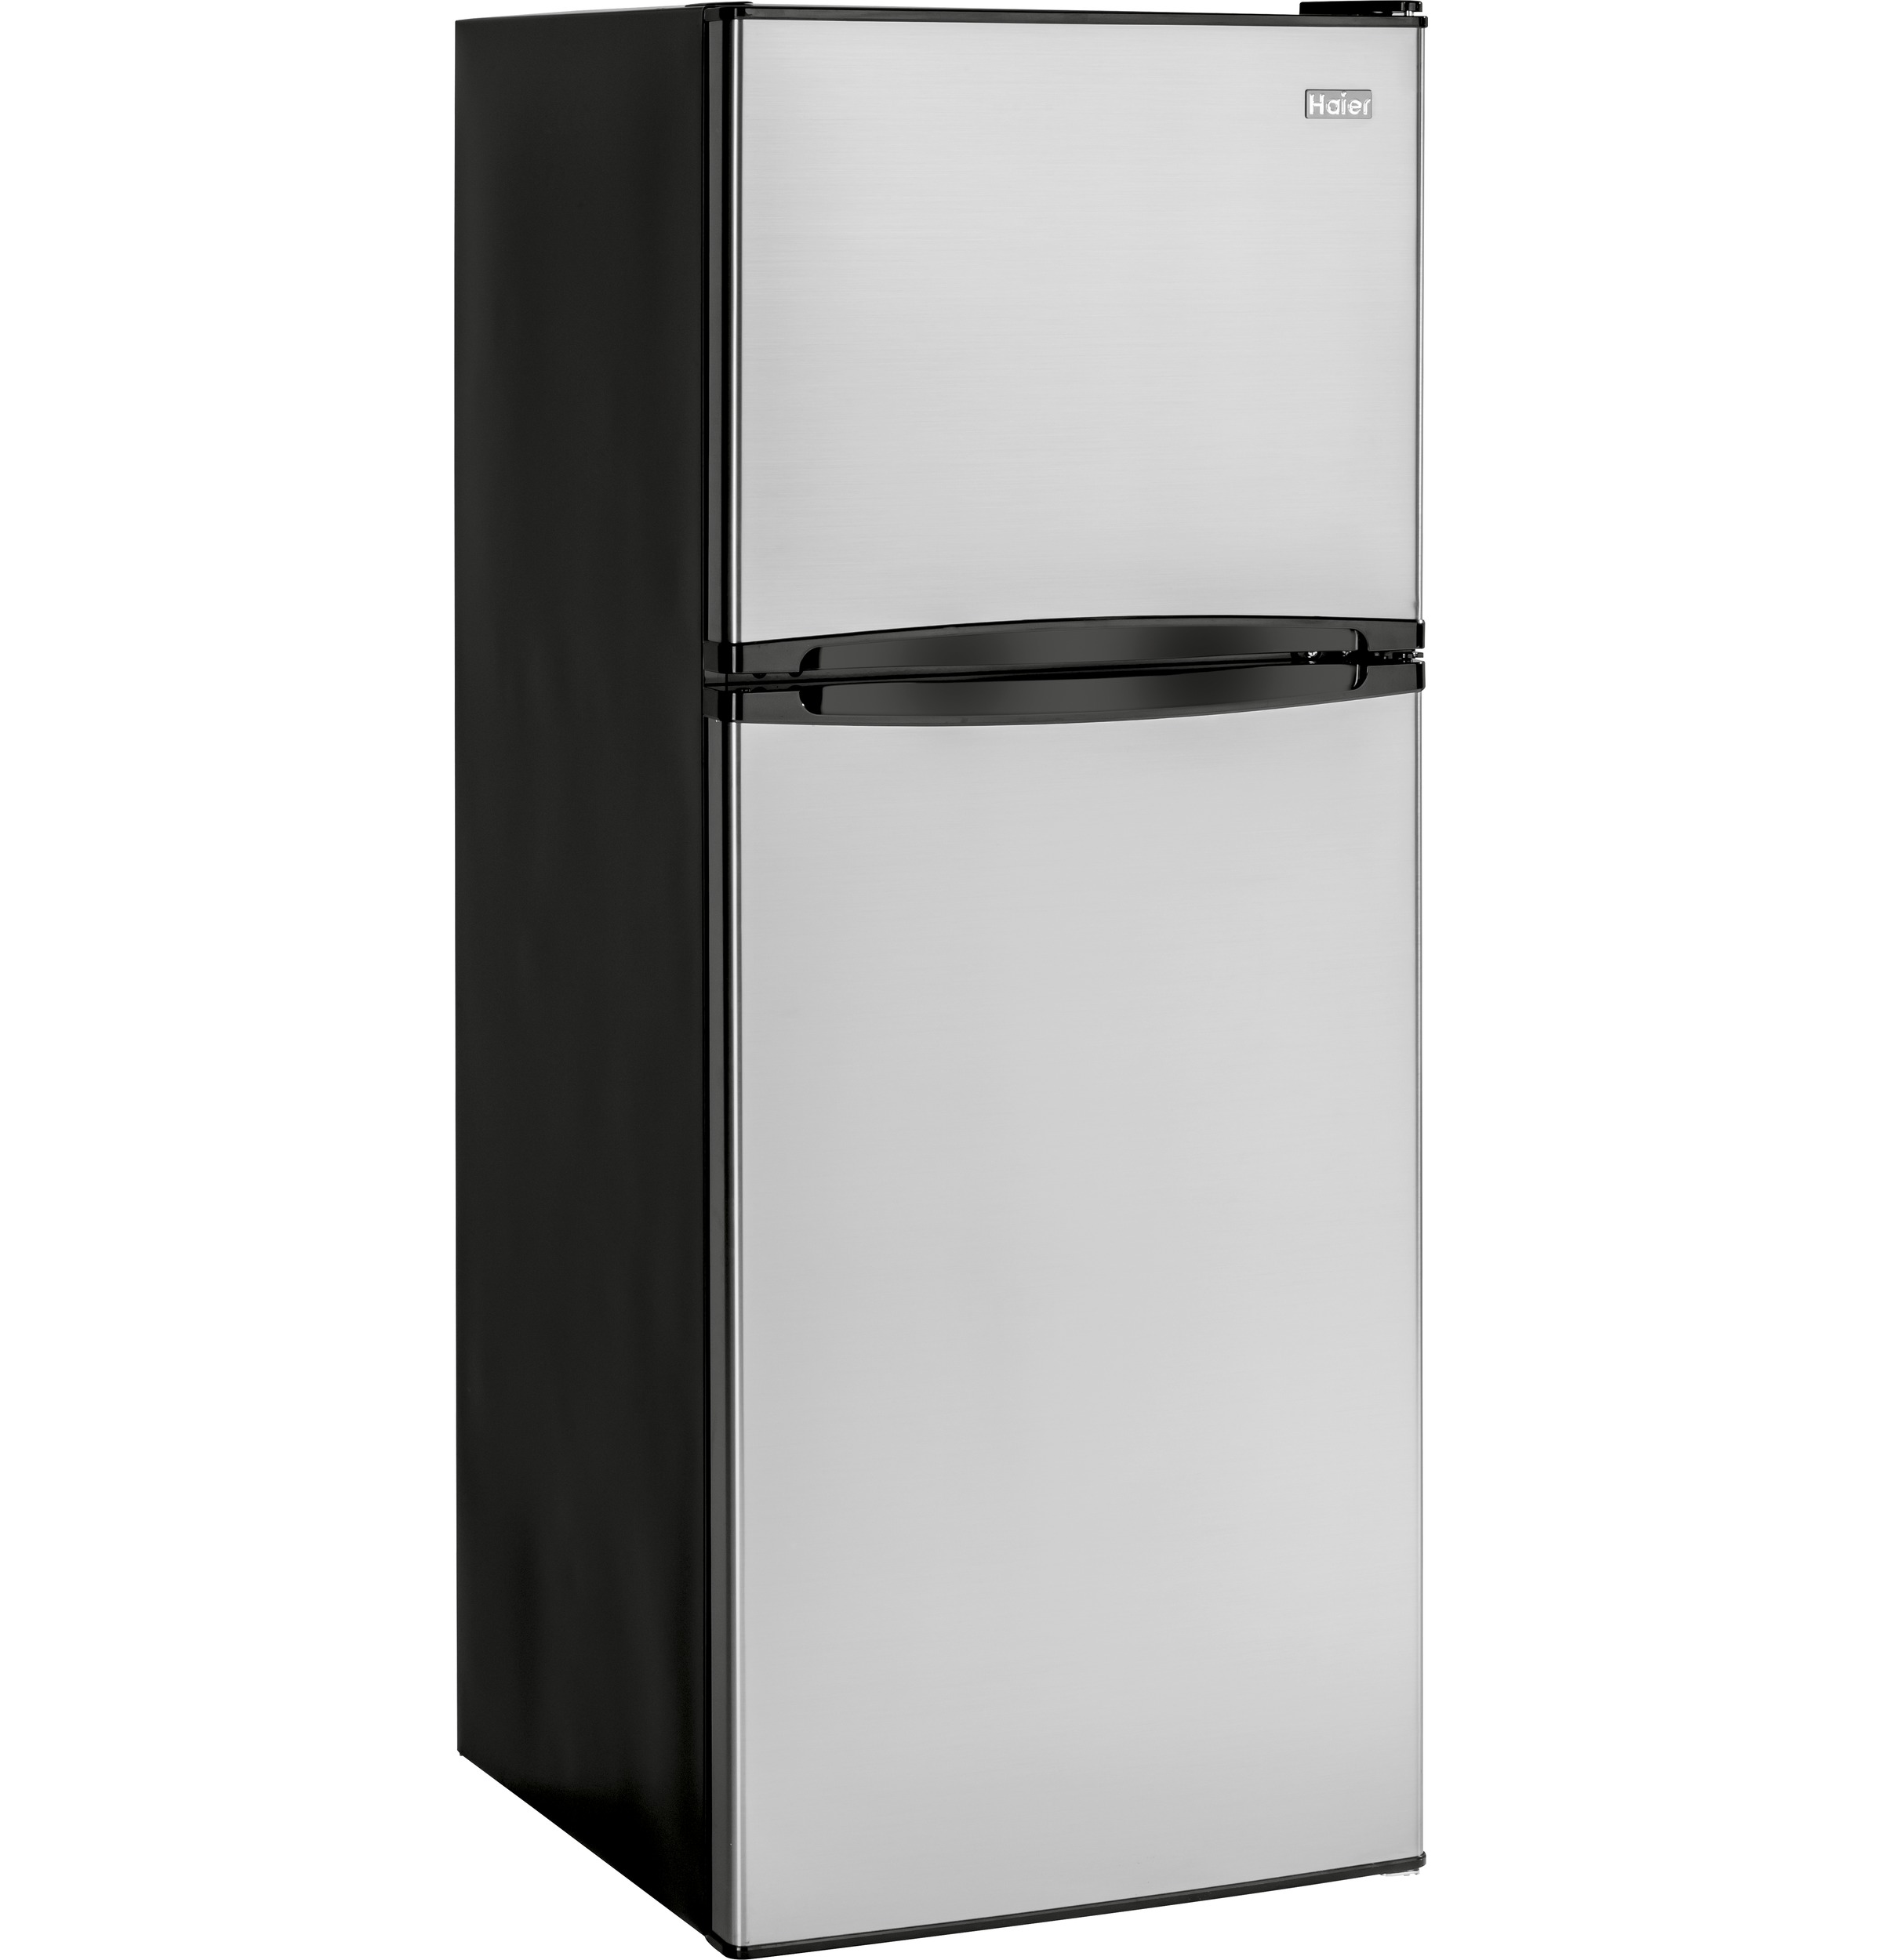 Ha12tg21ss 11 5 Cu Ft Top Freezer Refrigerator Haier